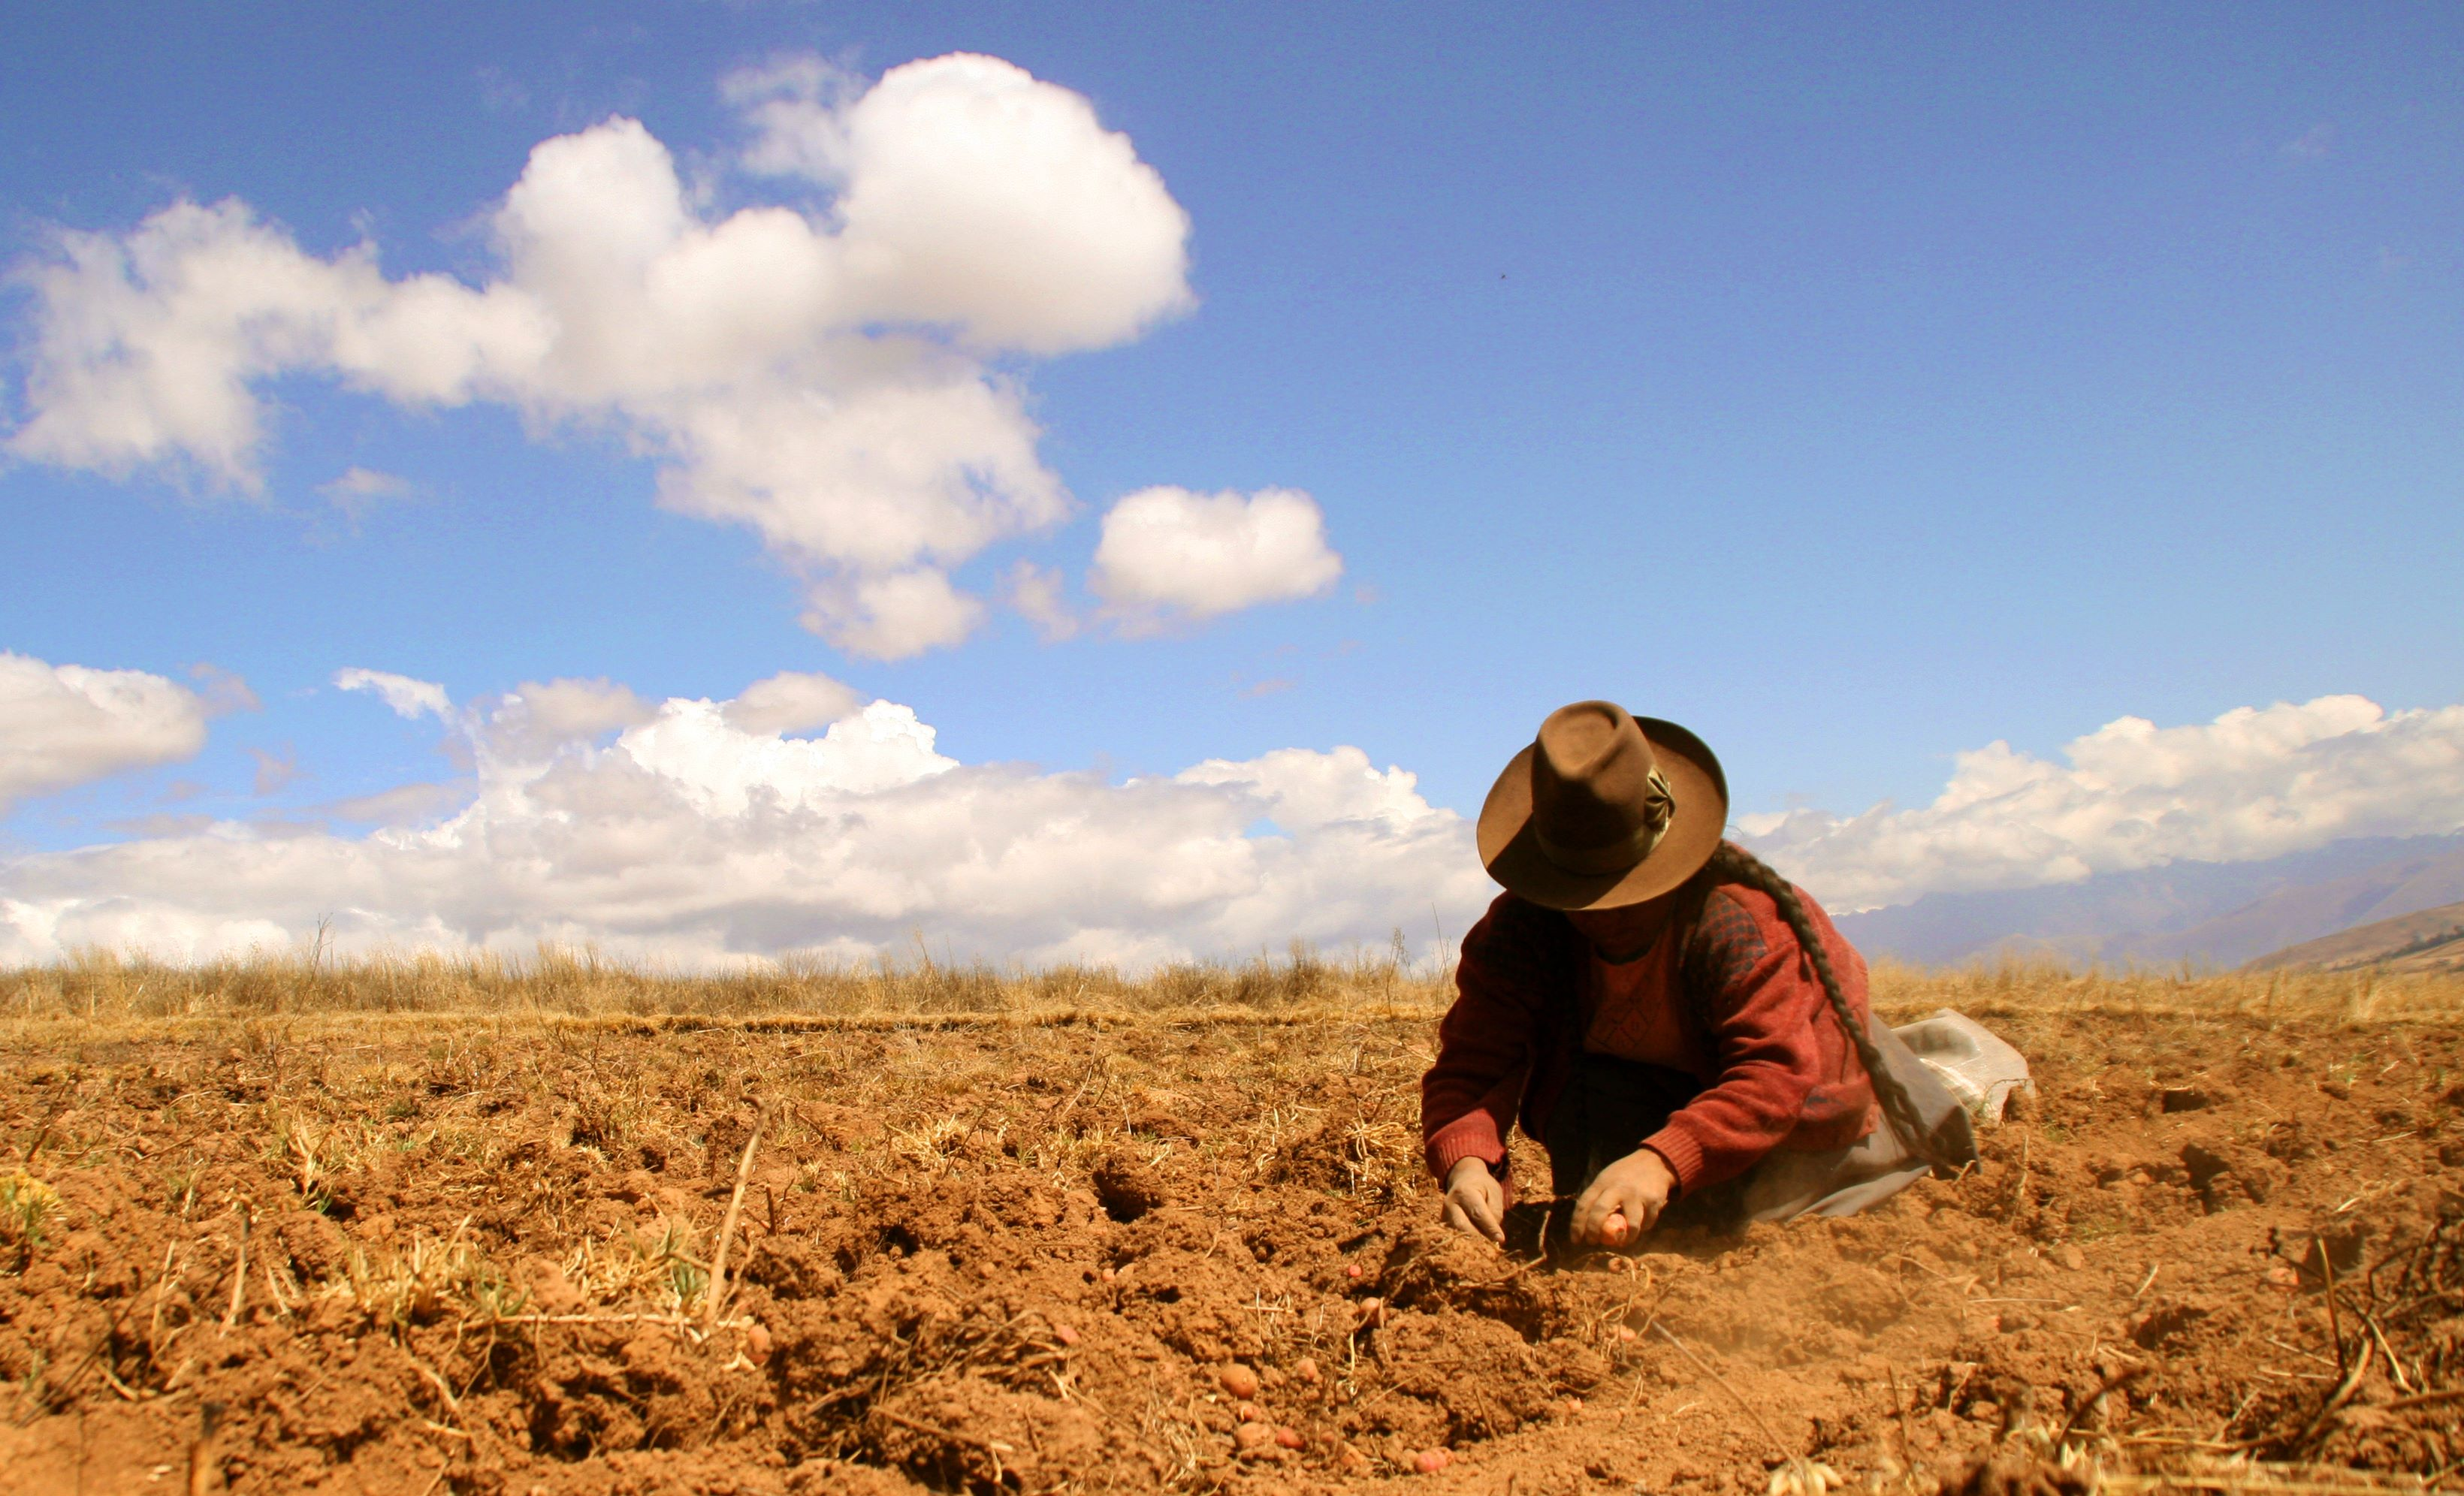 Traditional Potatoe harvest in the Andes of Peru